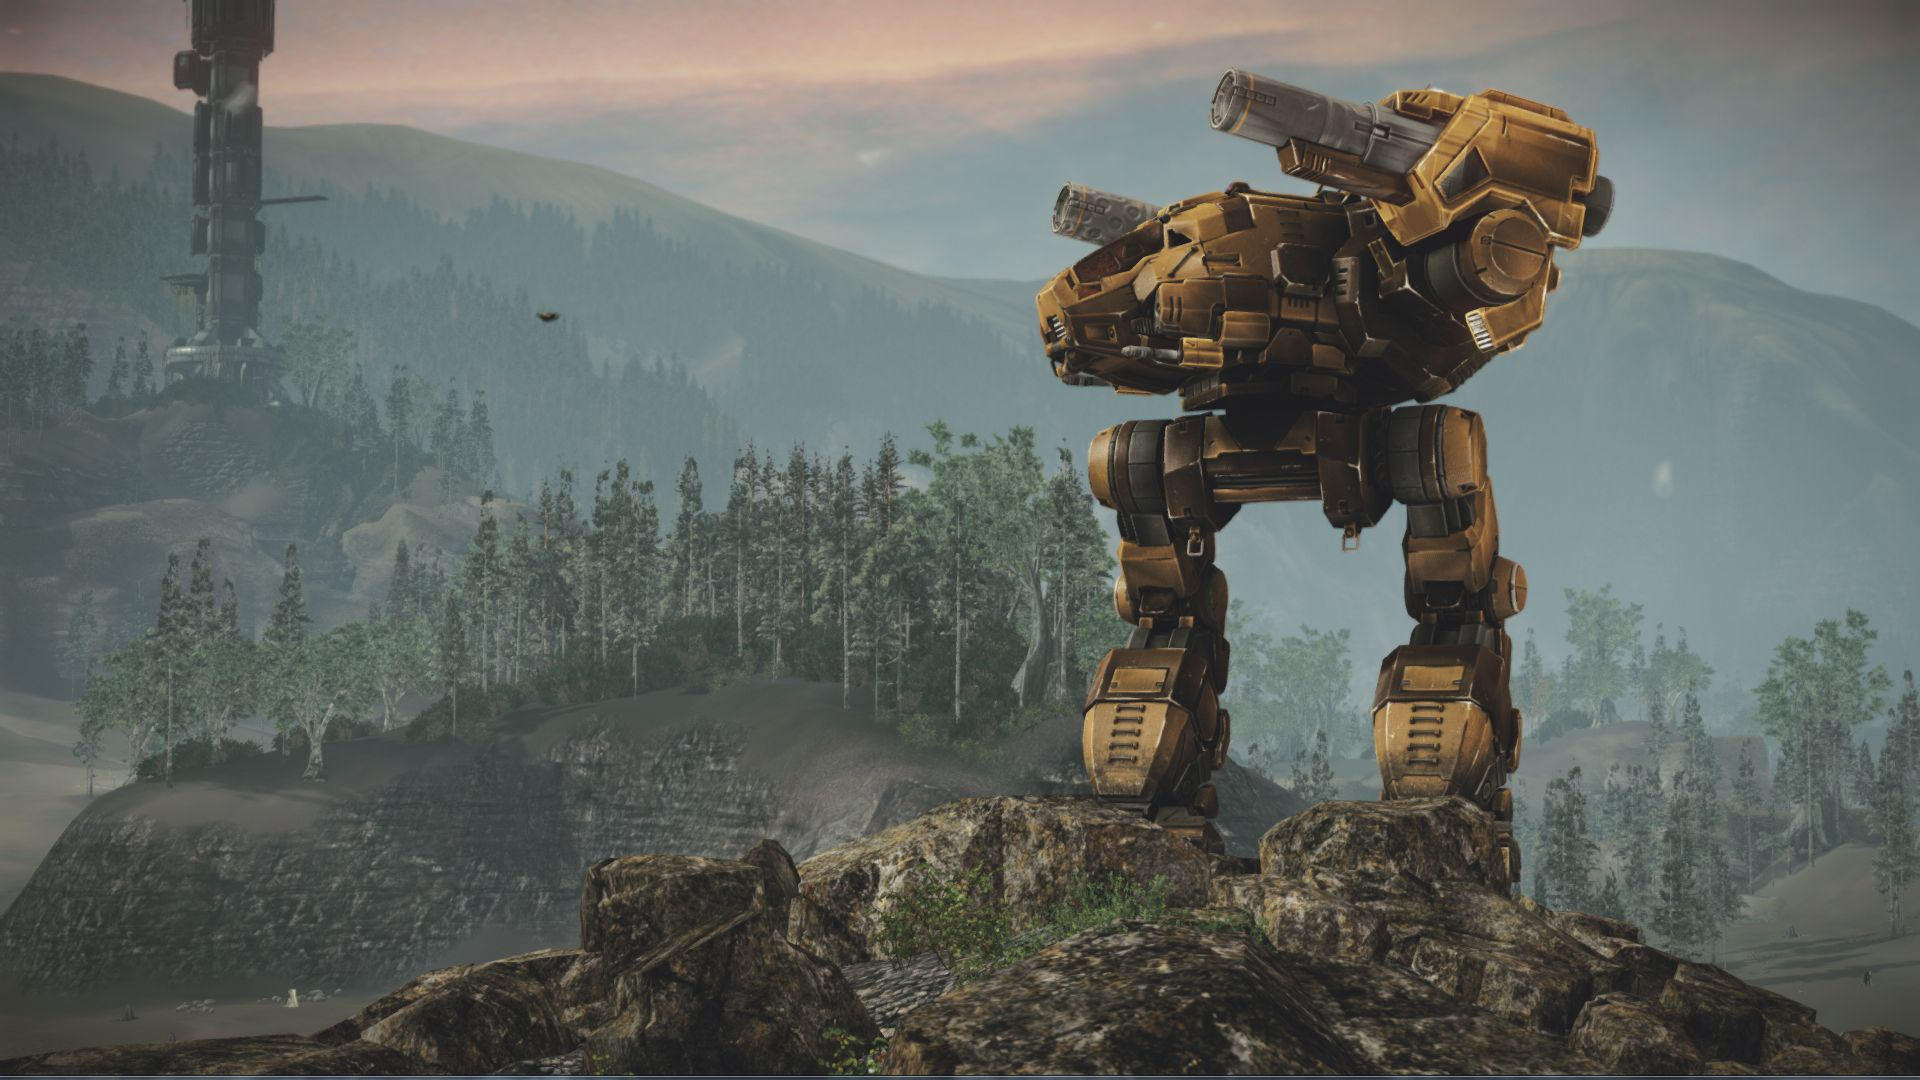 MechWarrior Online   PC   wwwGameInformercom 1920x1080